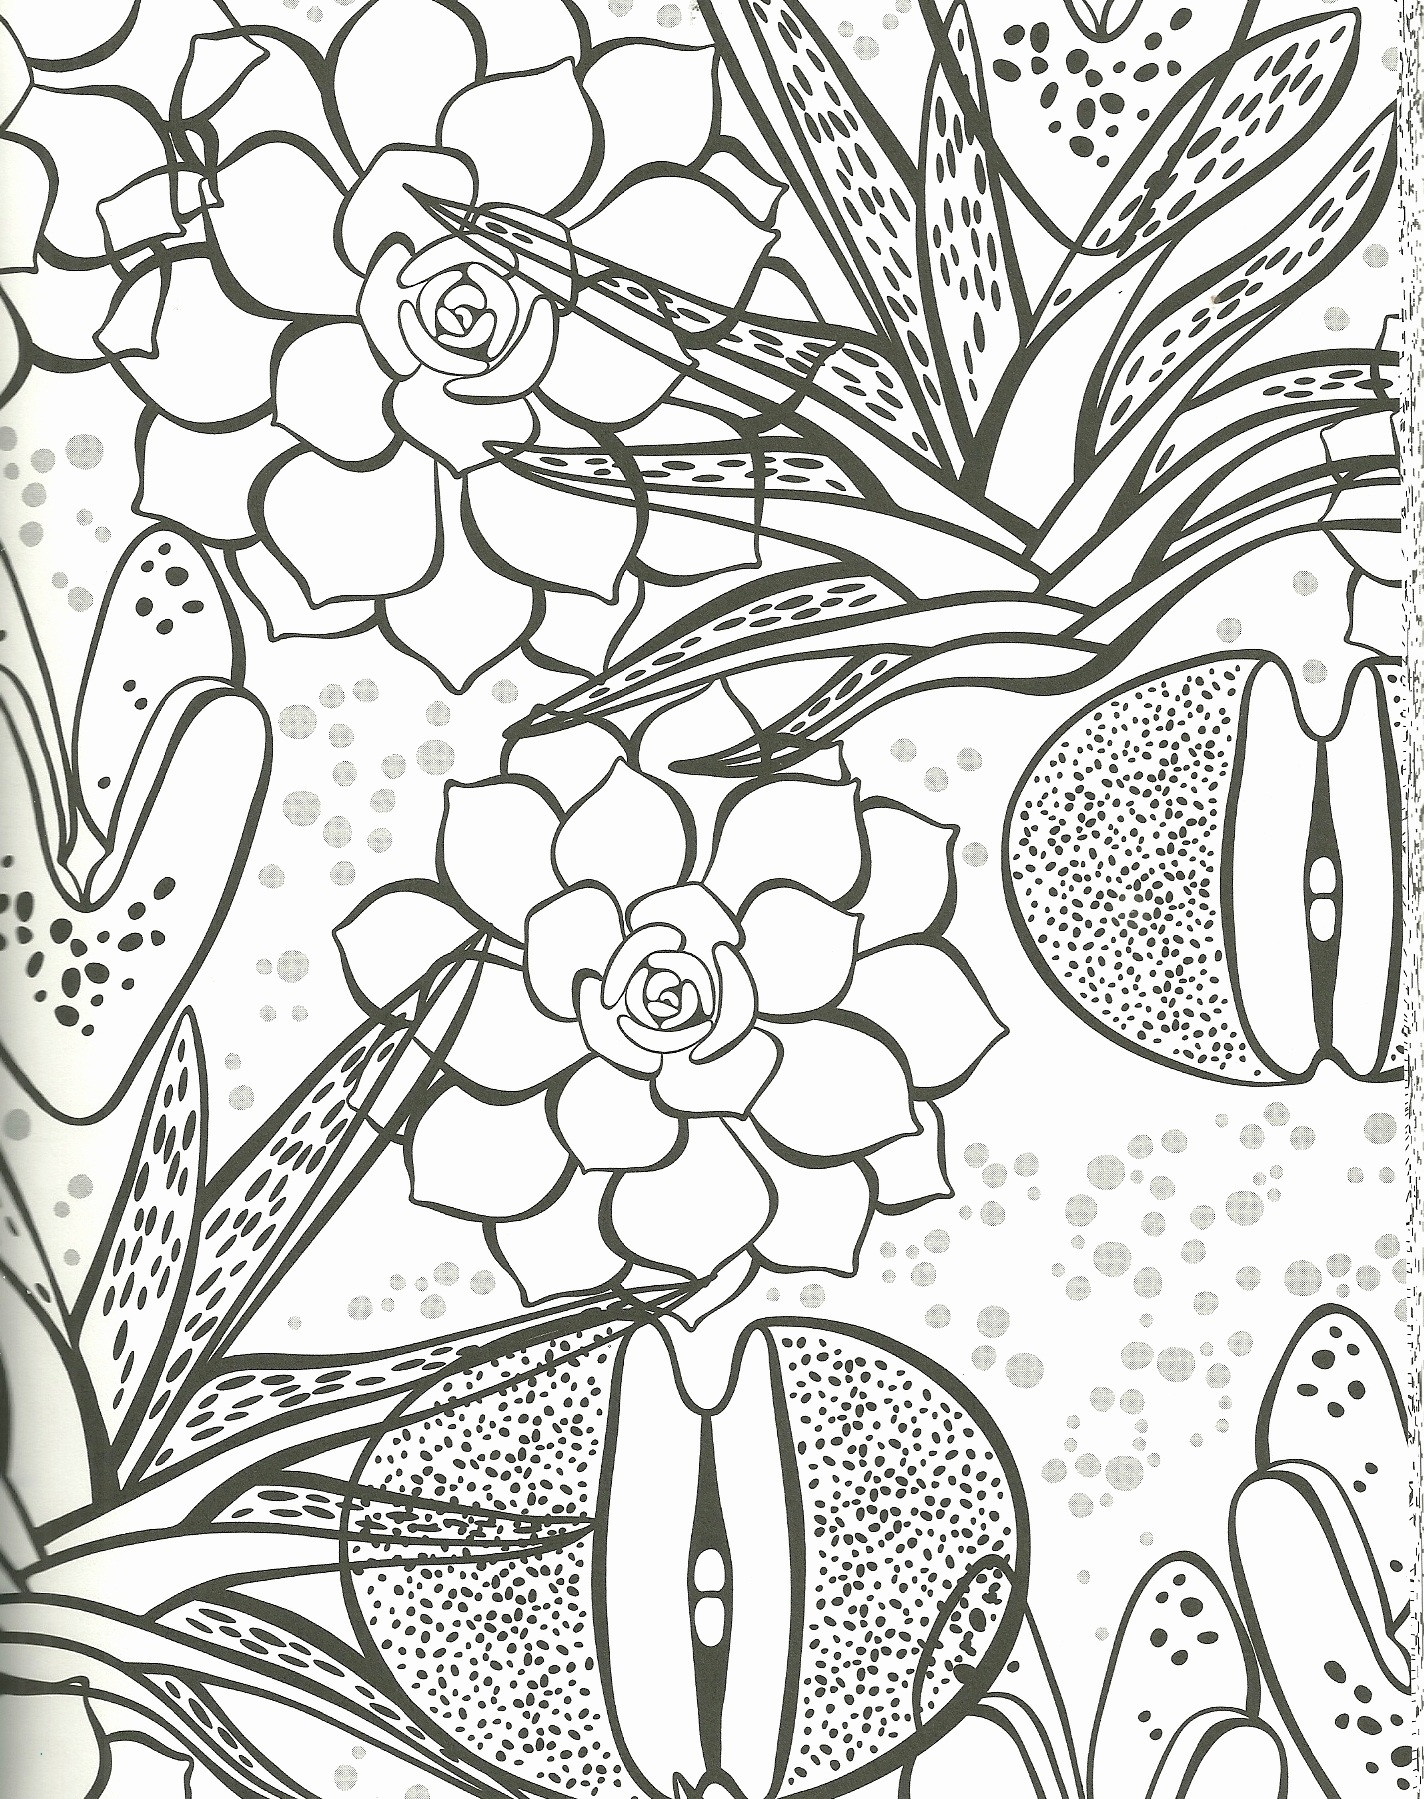 a flower vase of flowers coloring pages update cool vases flower vase coloring page for download image